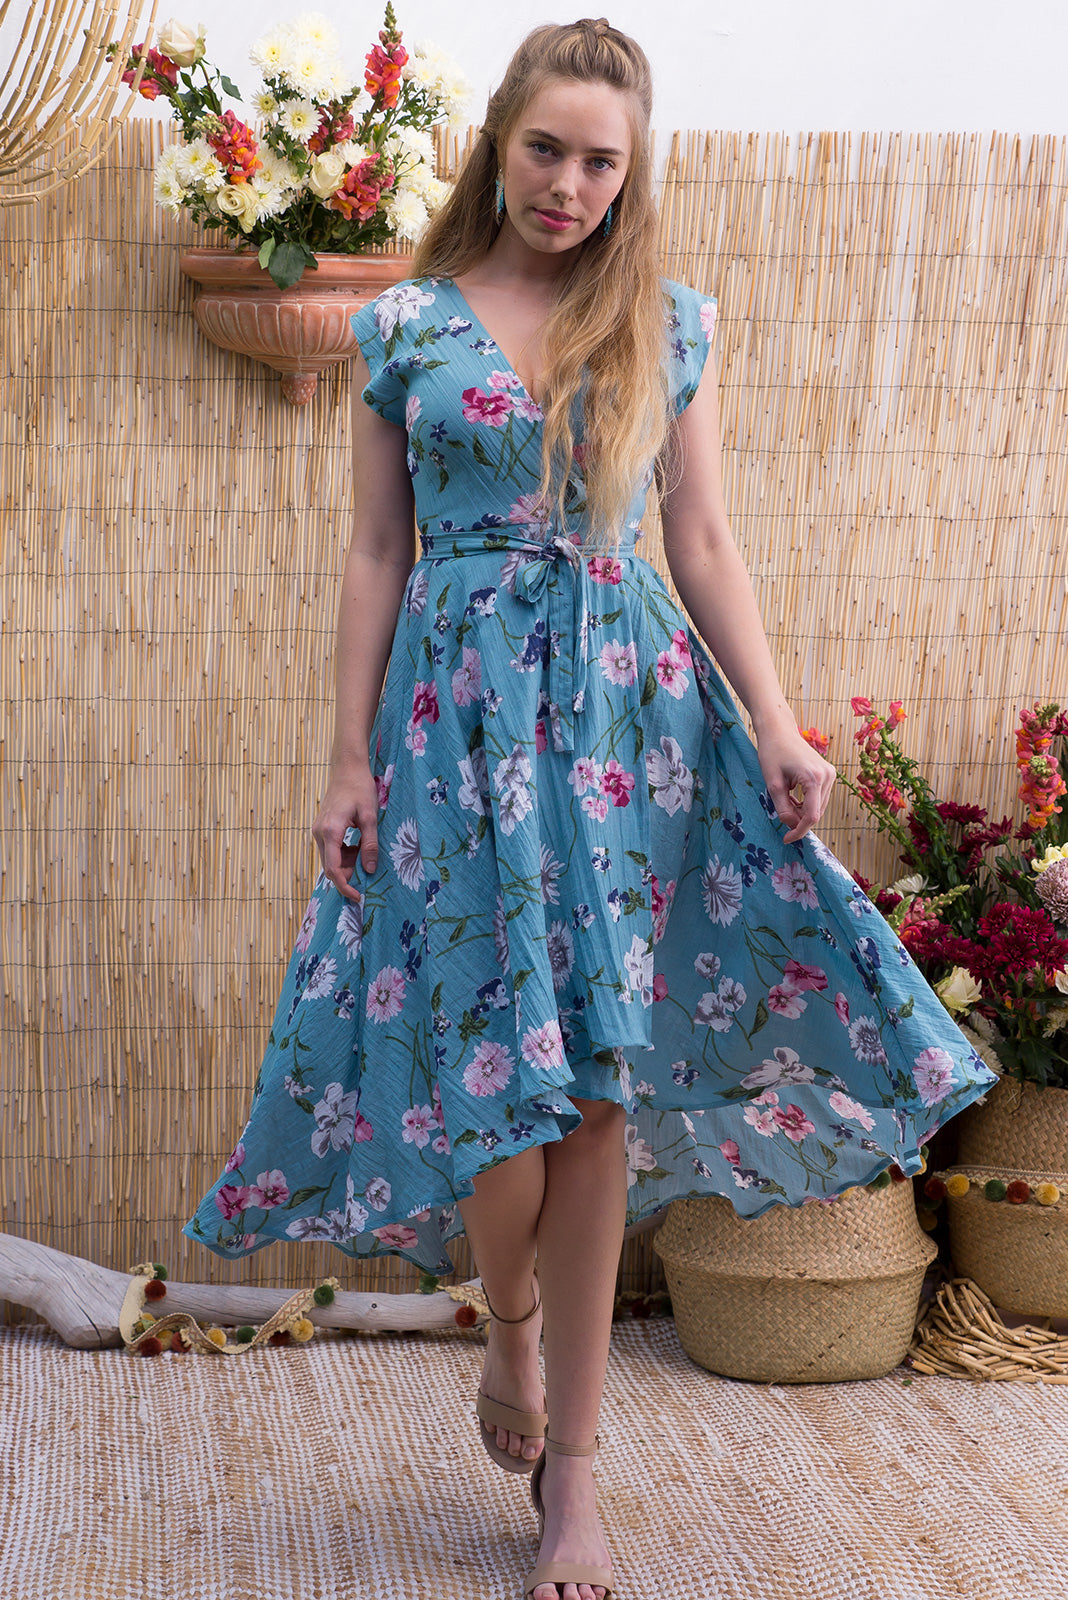 Florence Aero Blue Wrap Dress featuring a fitted cross over bust and flirty skirt with side pocket  in a sea foam green blue floral print on a ripple textured polyester blend fabric